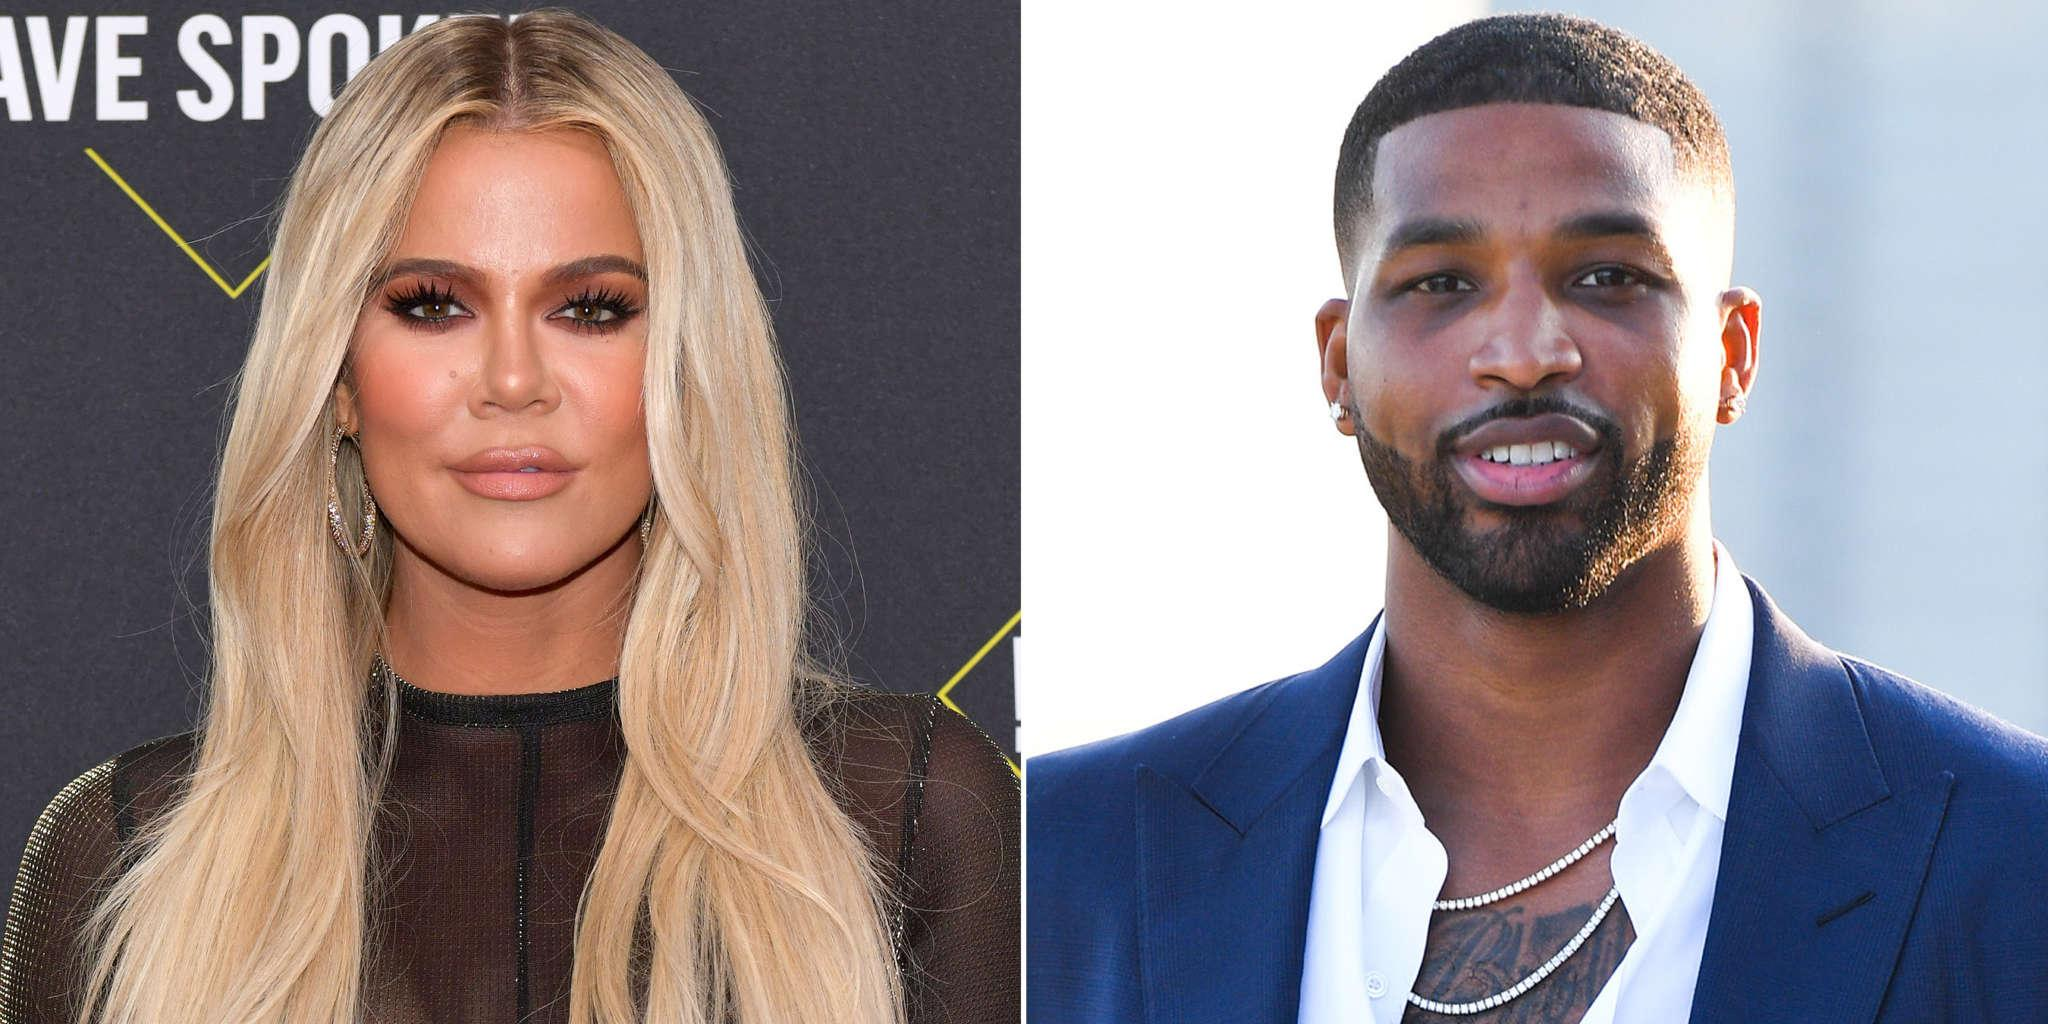 KUWK: Khloe Kardashian Is Reportedly Ready To Find A New Love!